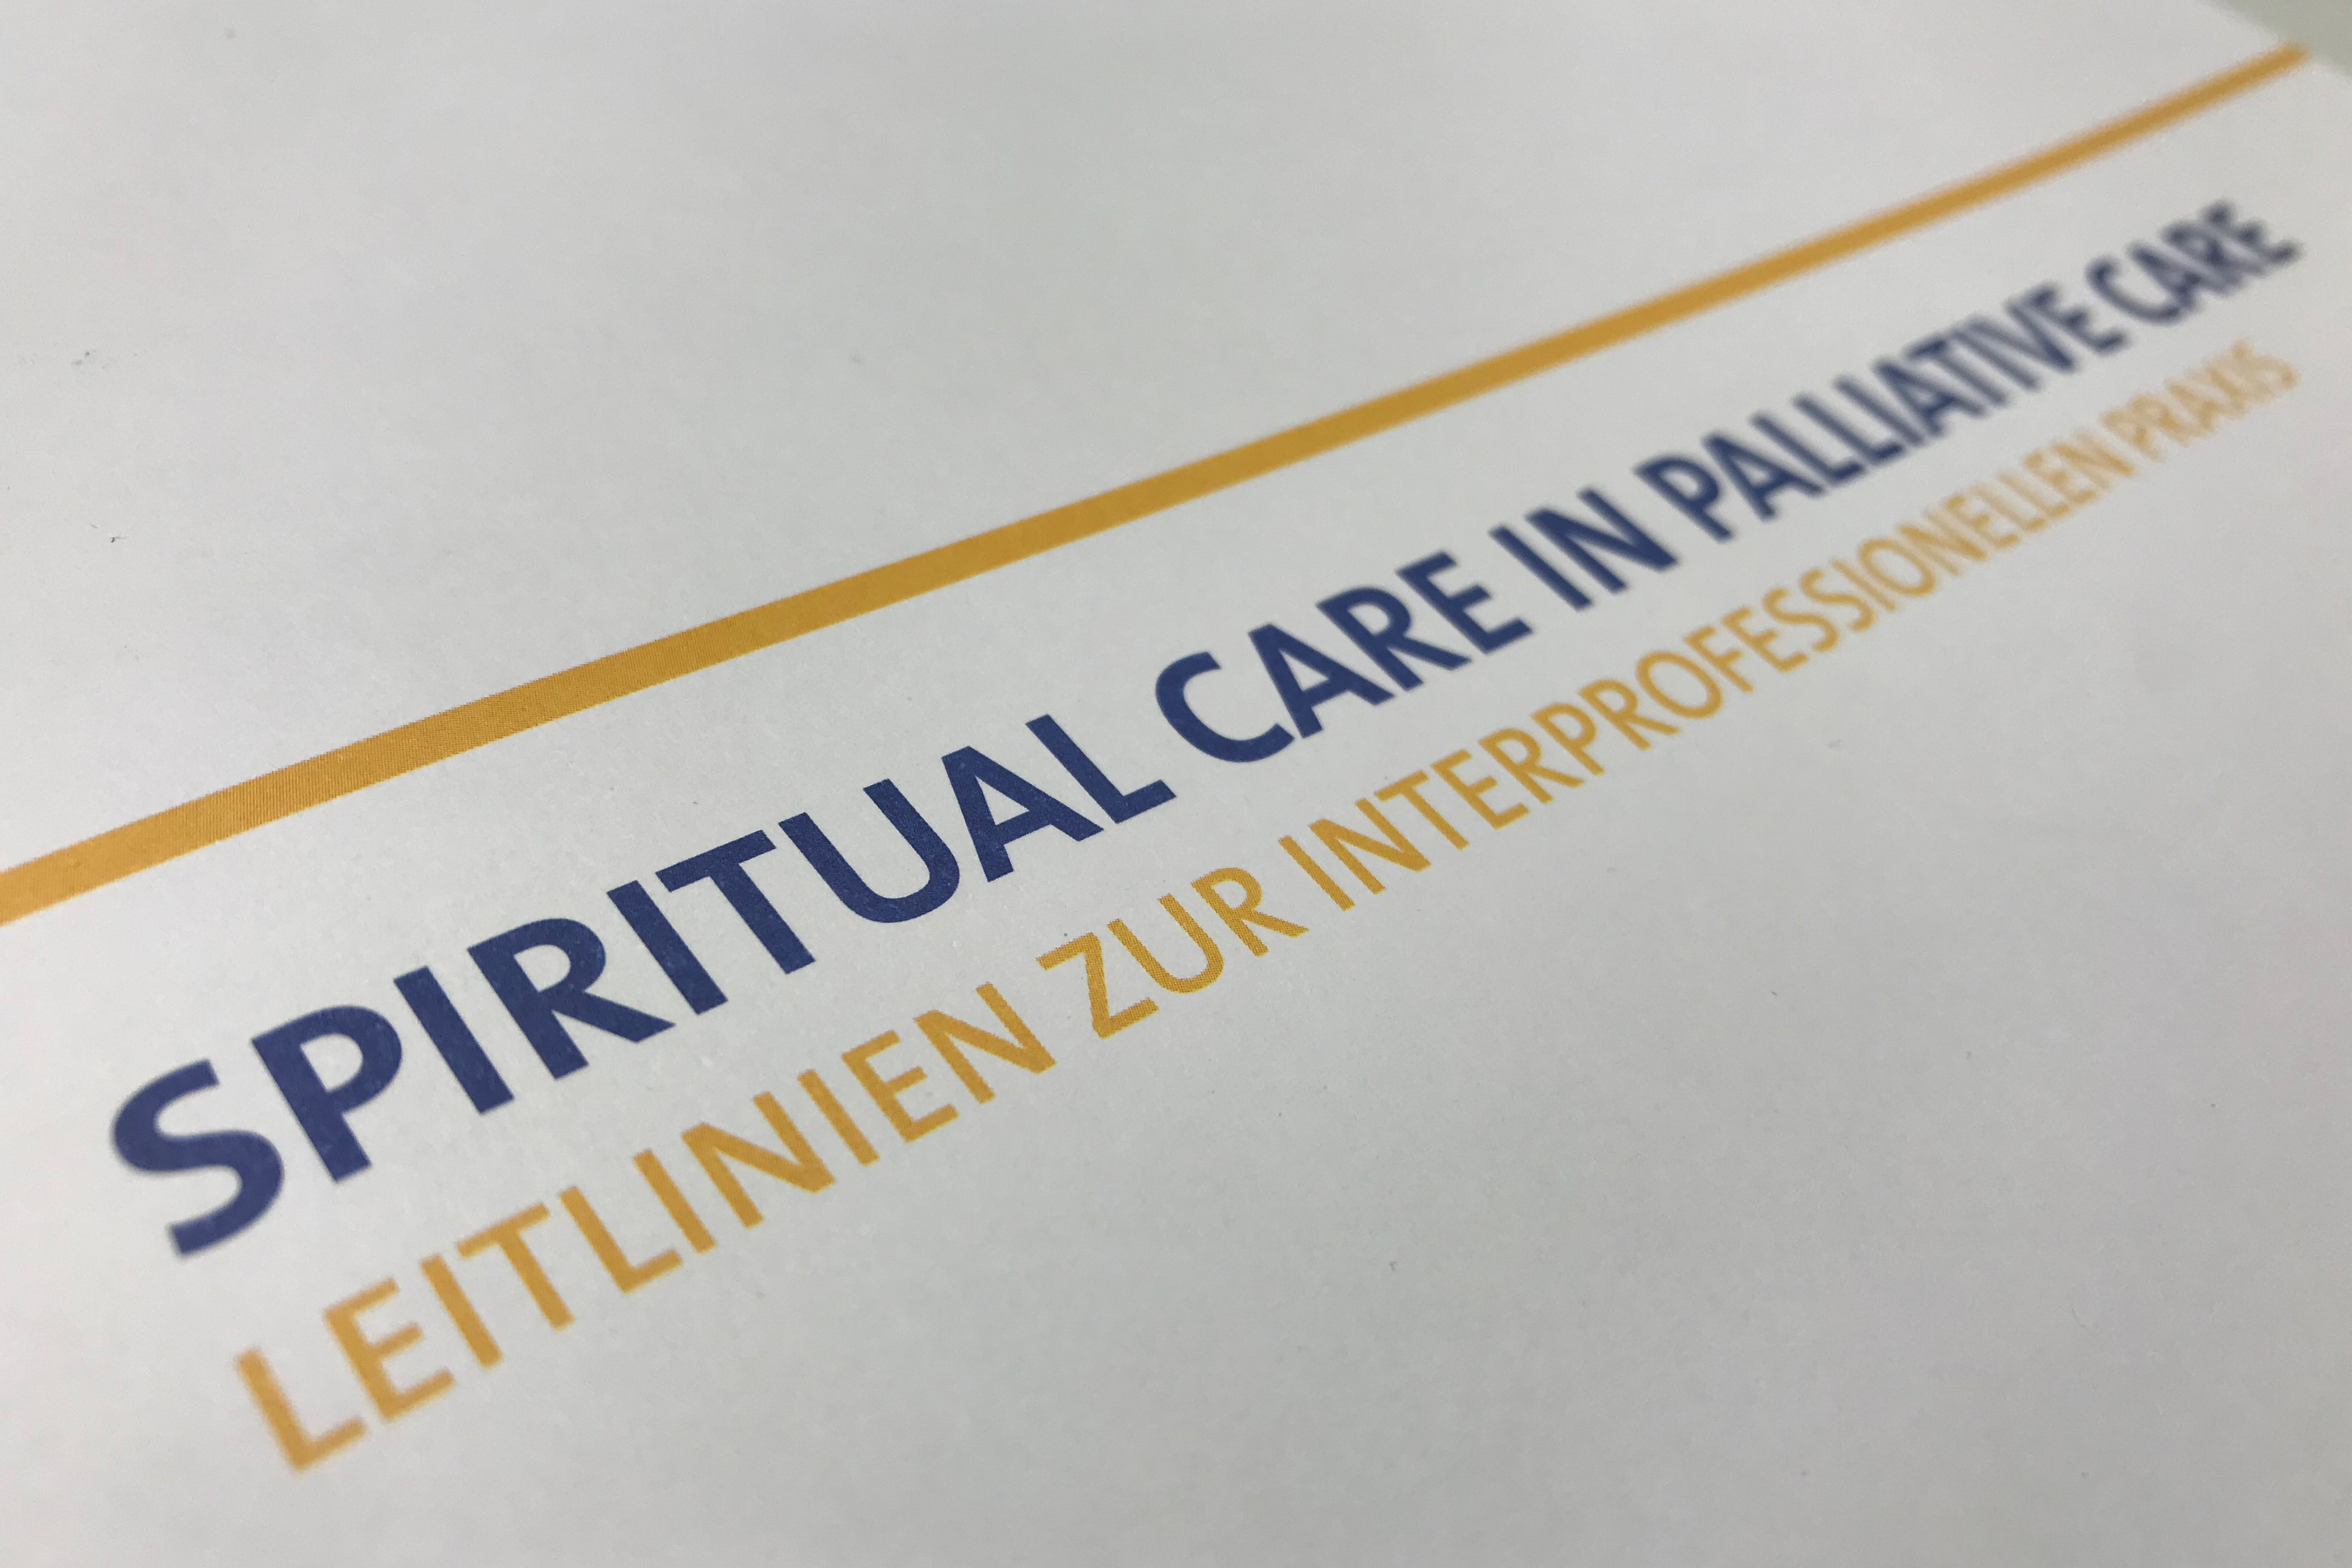 Leitlinien für Spiritual Care in der Palliative Care